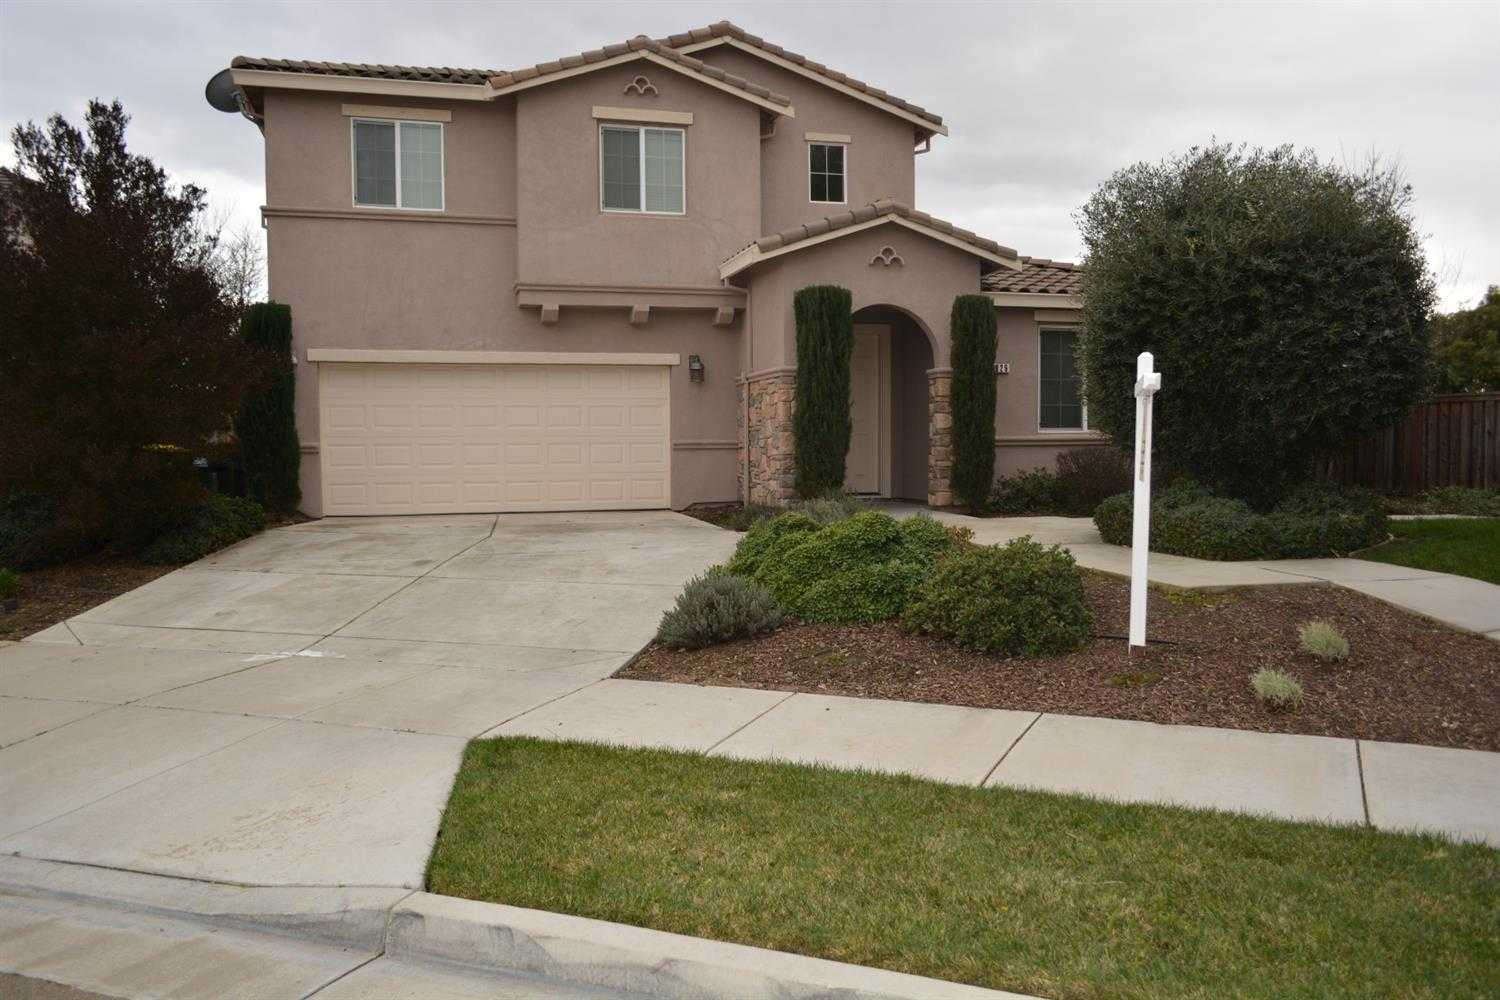 $479,000 - 4Br/4Ba -  for Sale in Lathrop